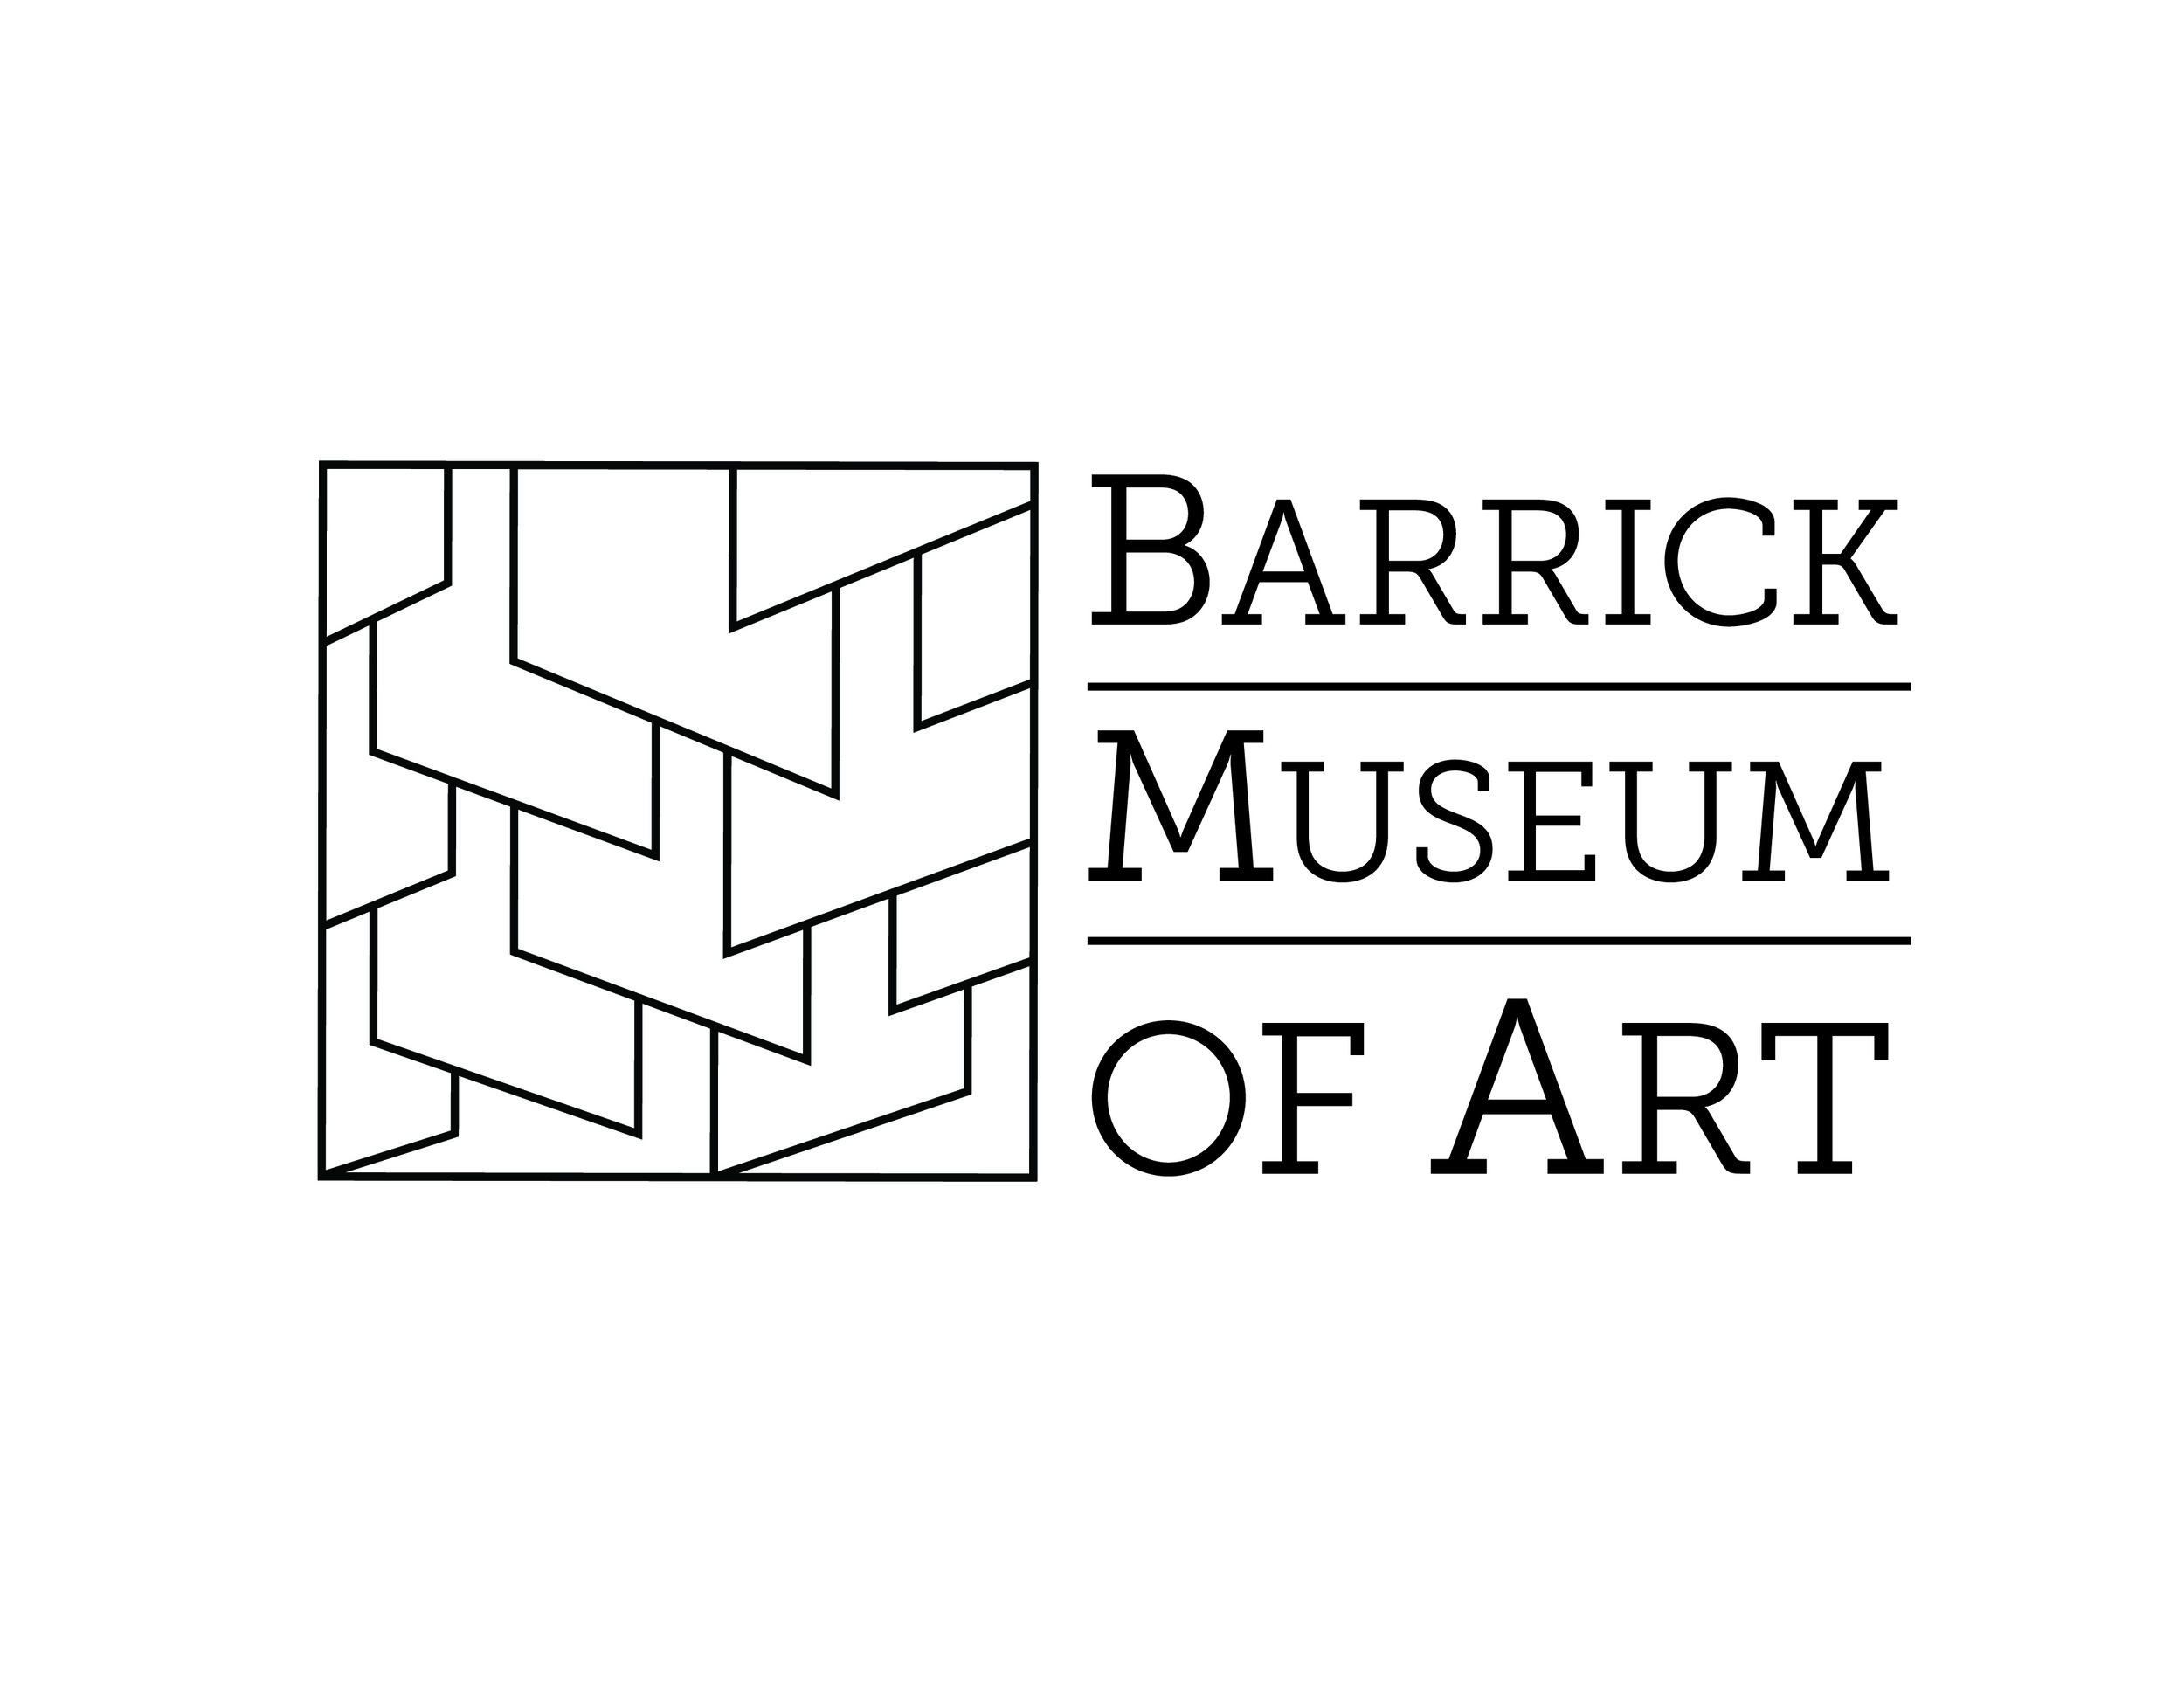 Barrick Museum of Art Las Vegas